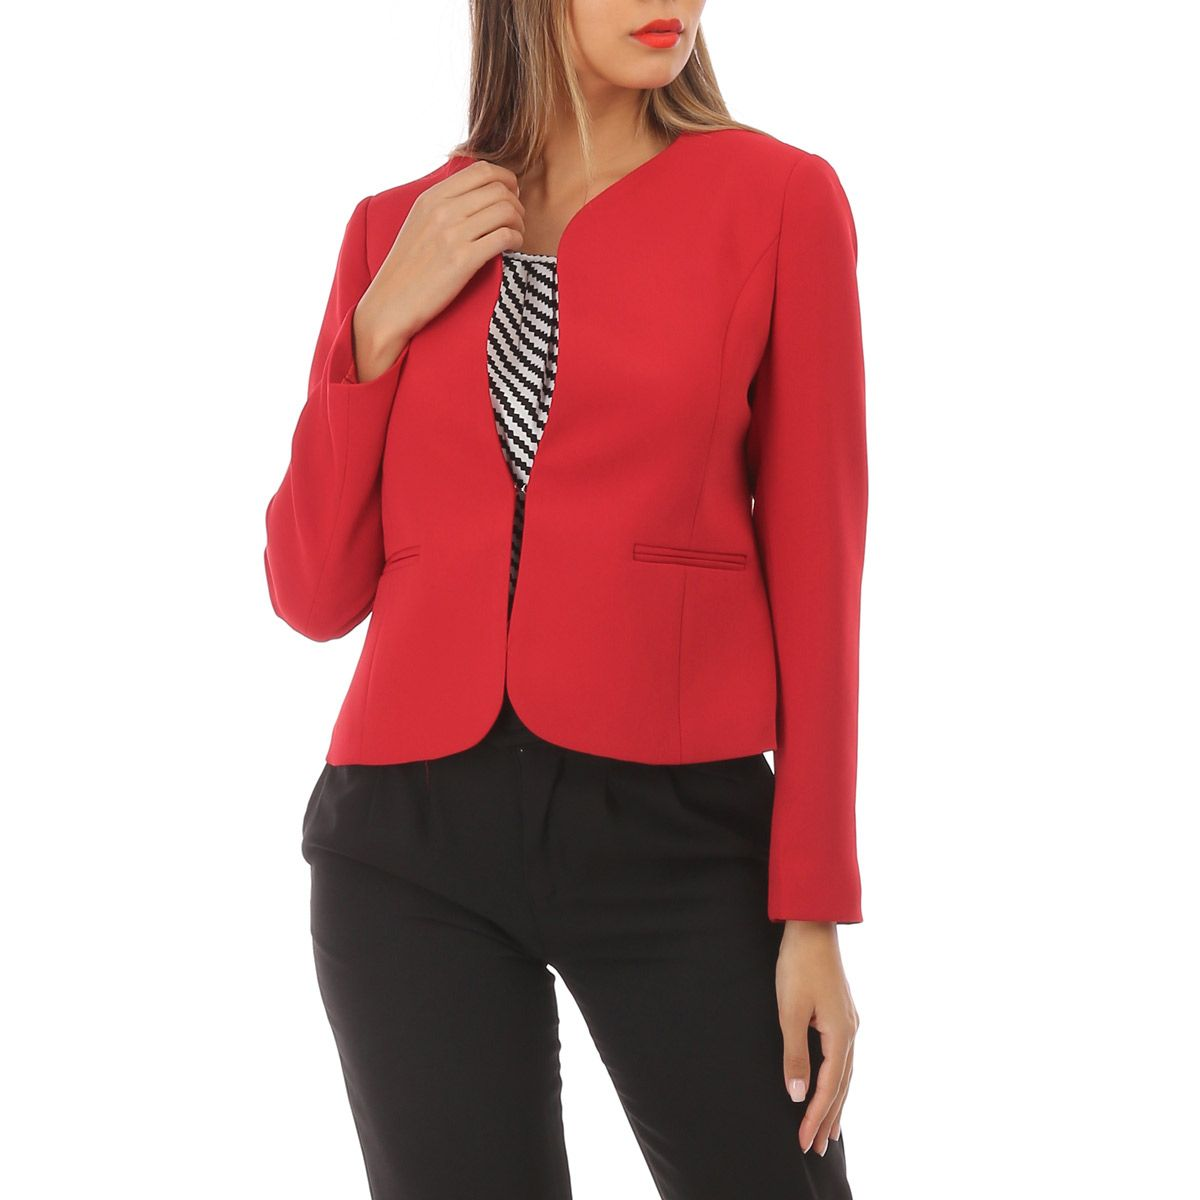 separation shoes d31ff 16dc1 Veste blazer rouge à col rond